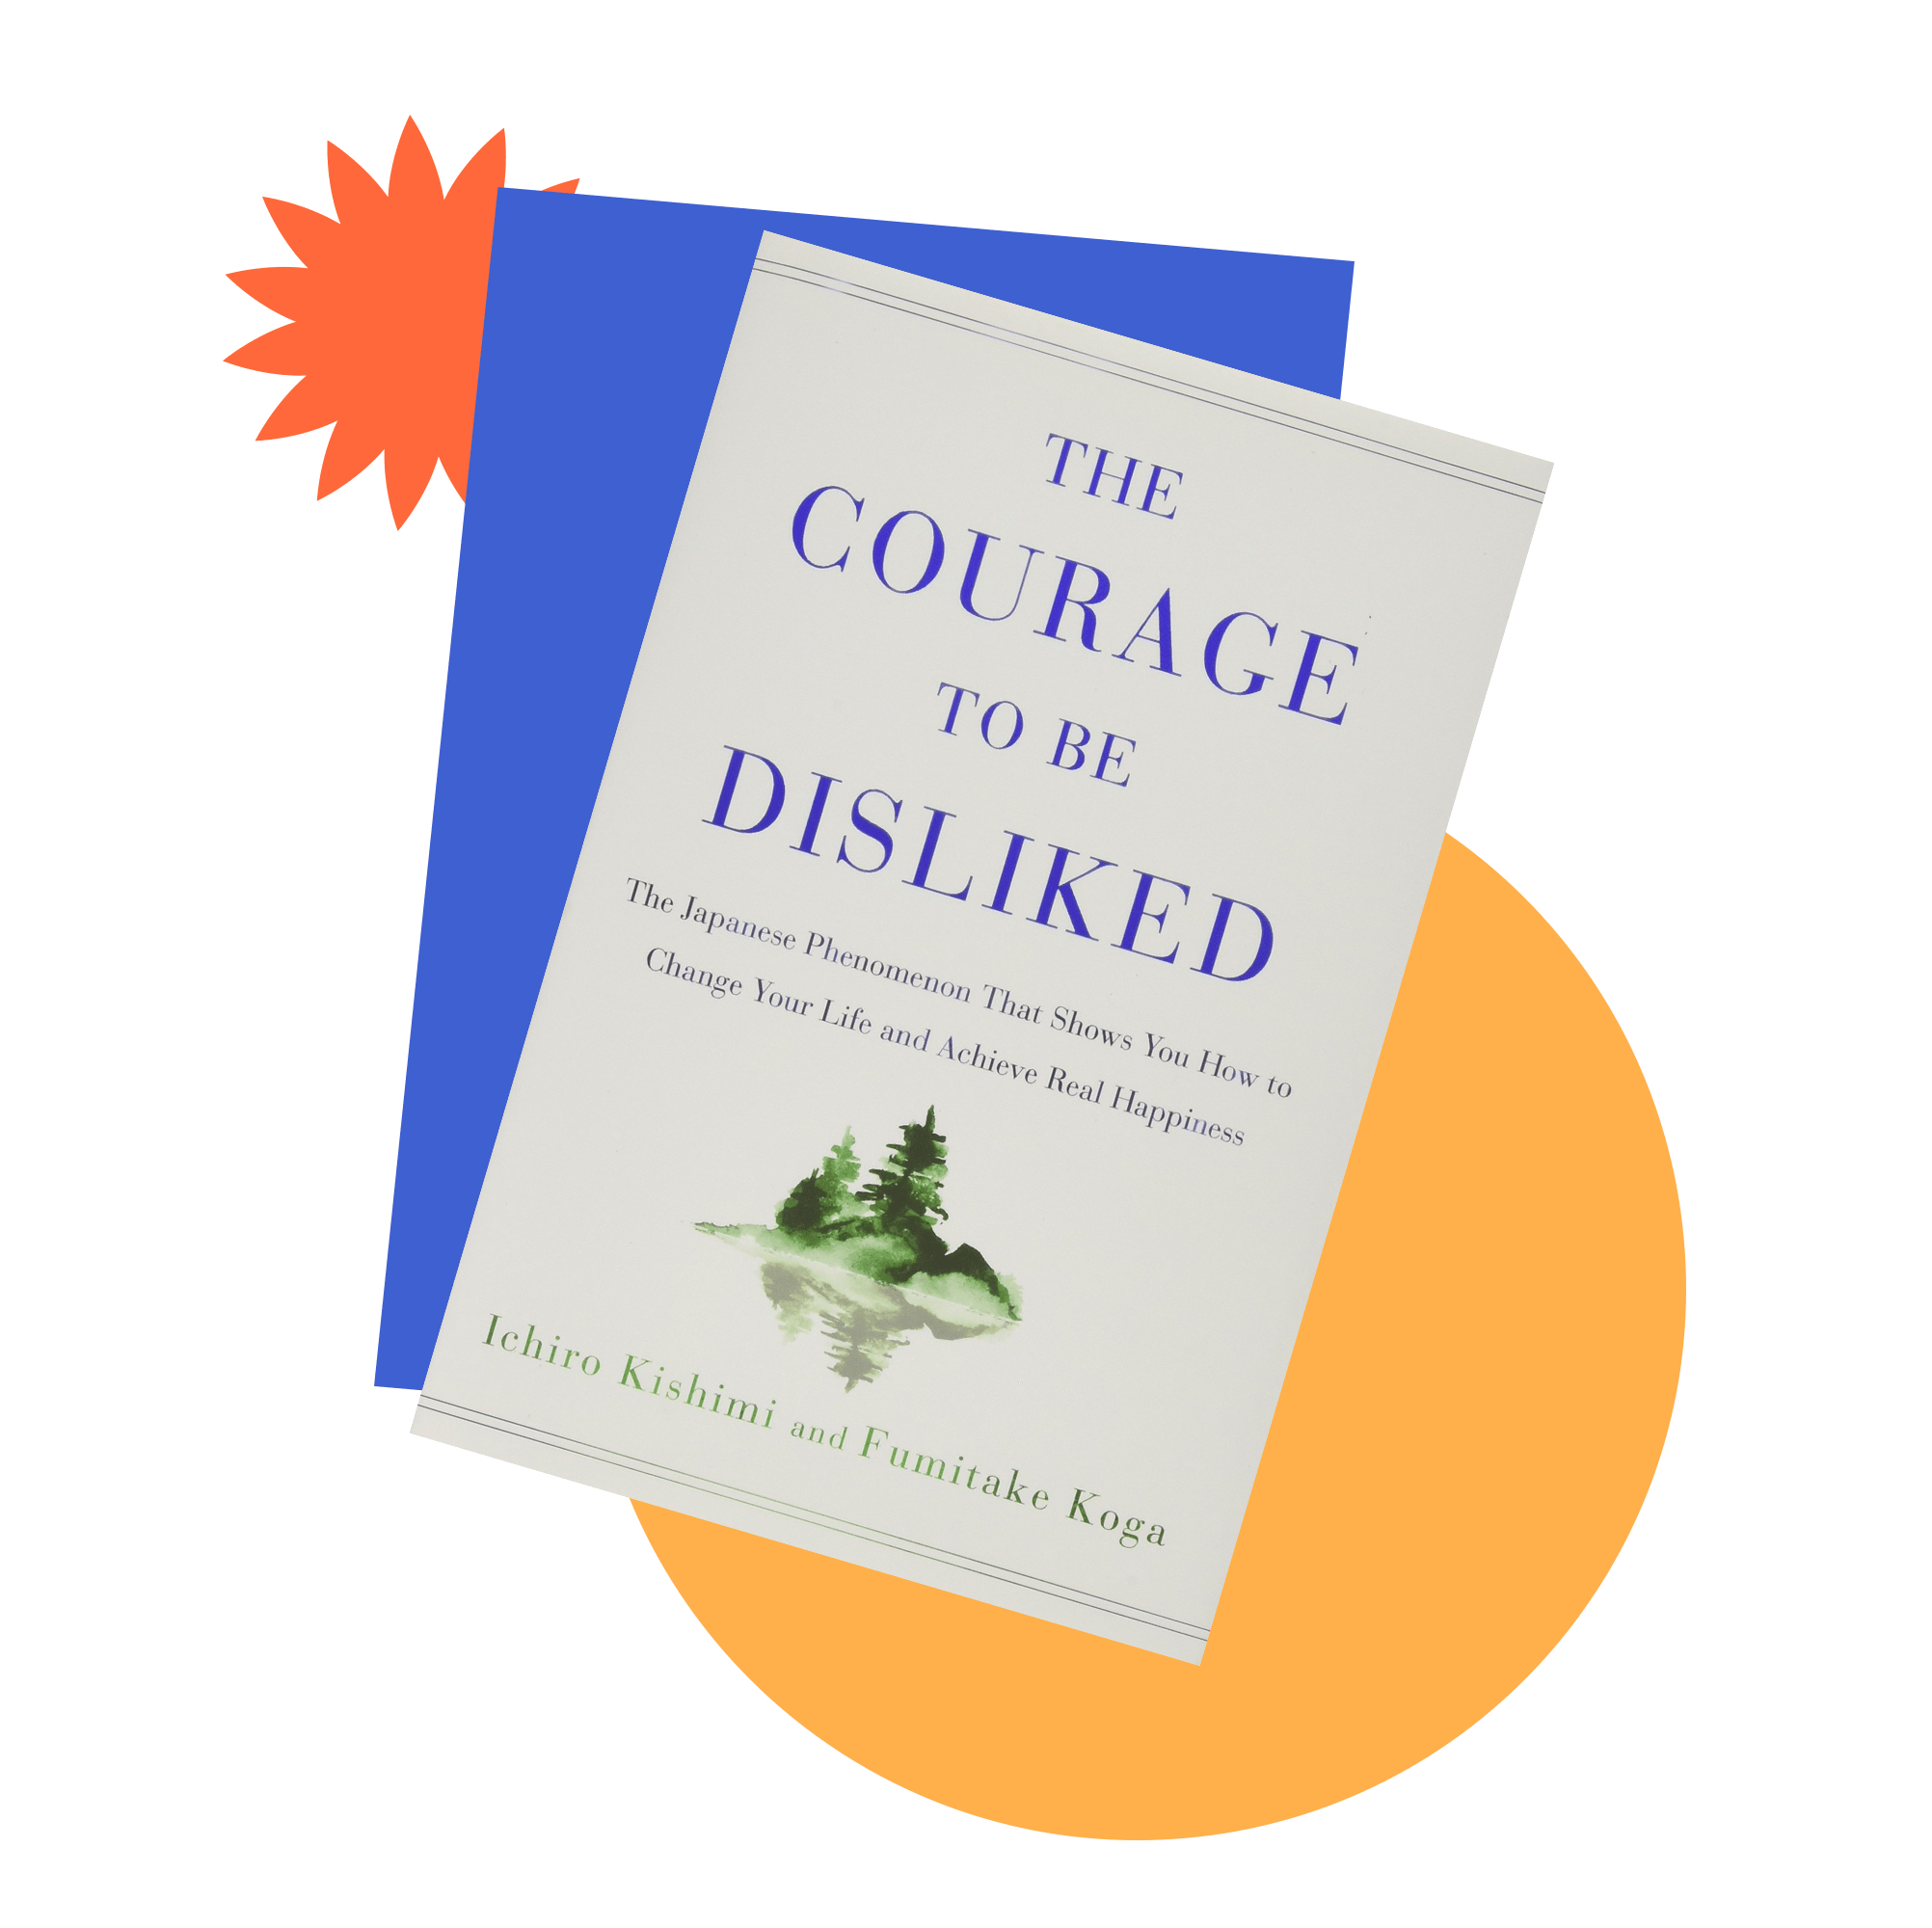 Book jacket cover for The Courage to Be Disliked by Ichiro Kishimi and Fumitake Koga